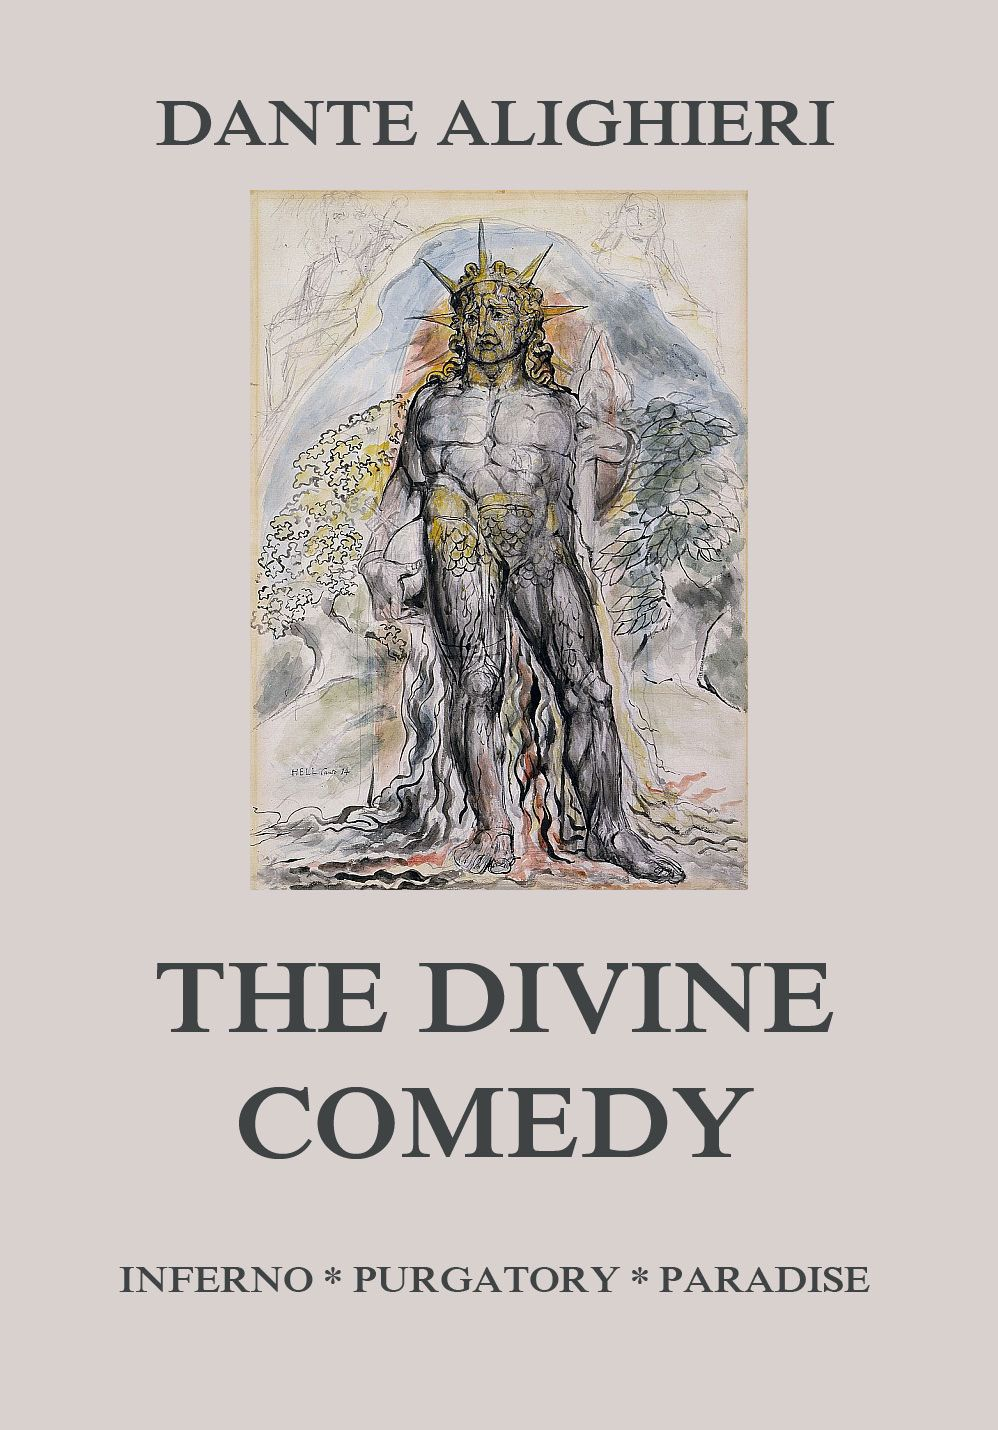 divine comedy and candide This is a true adaptation, not a translation, and one in which the graphics do more of the storytelling than the text chwast's illustrations carry the main content of the divine comedy while.